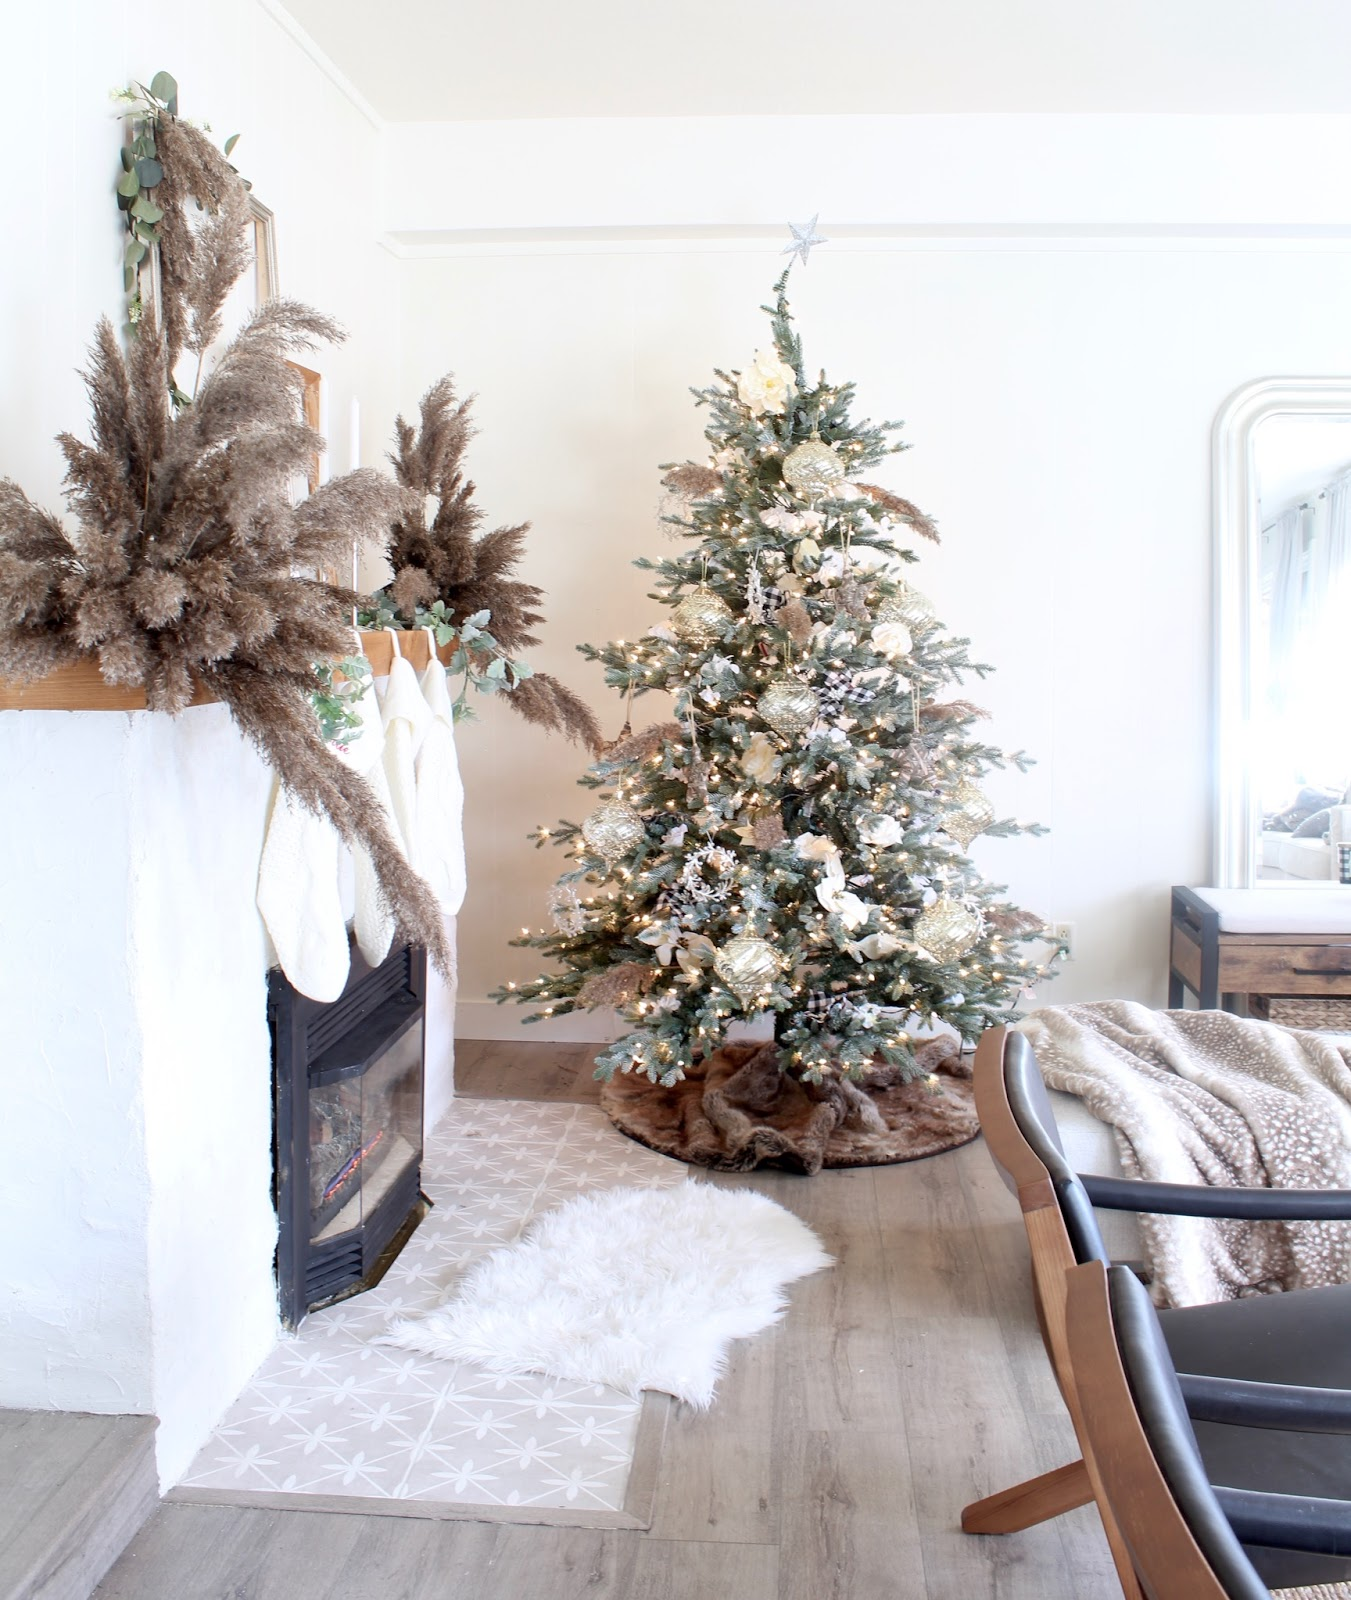 nordic-christmas-decorating-ideas-pampas-grass-diy-wedding-holiday-decor-7